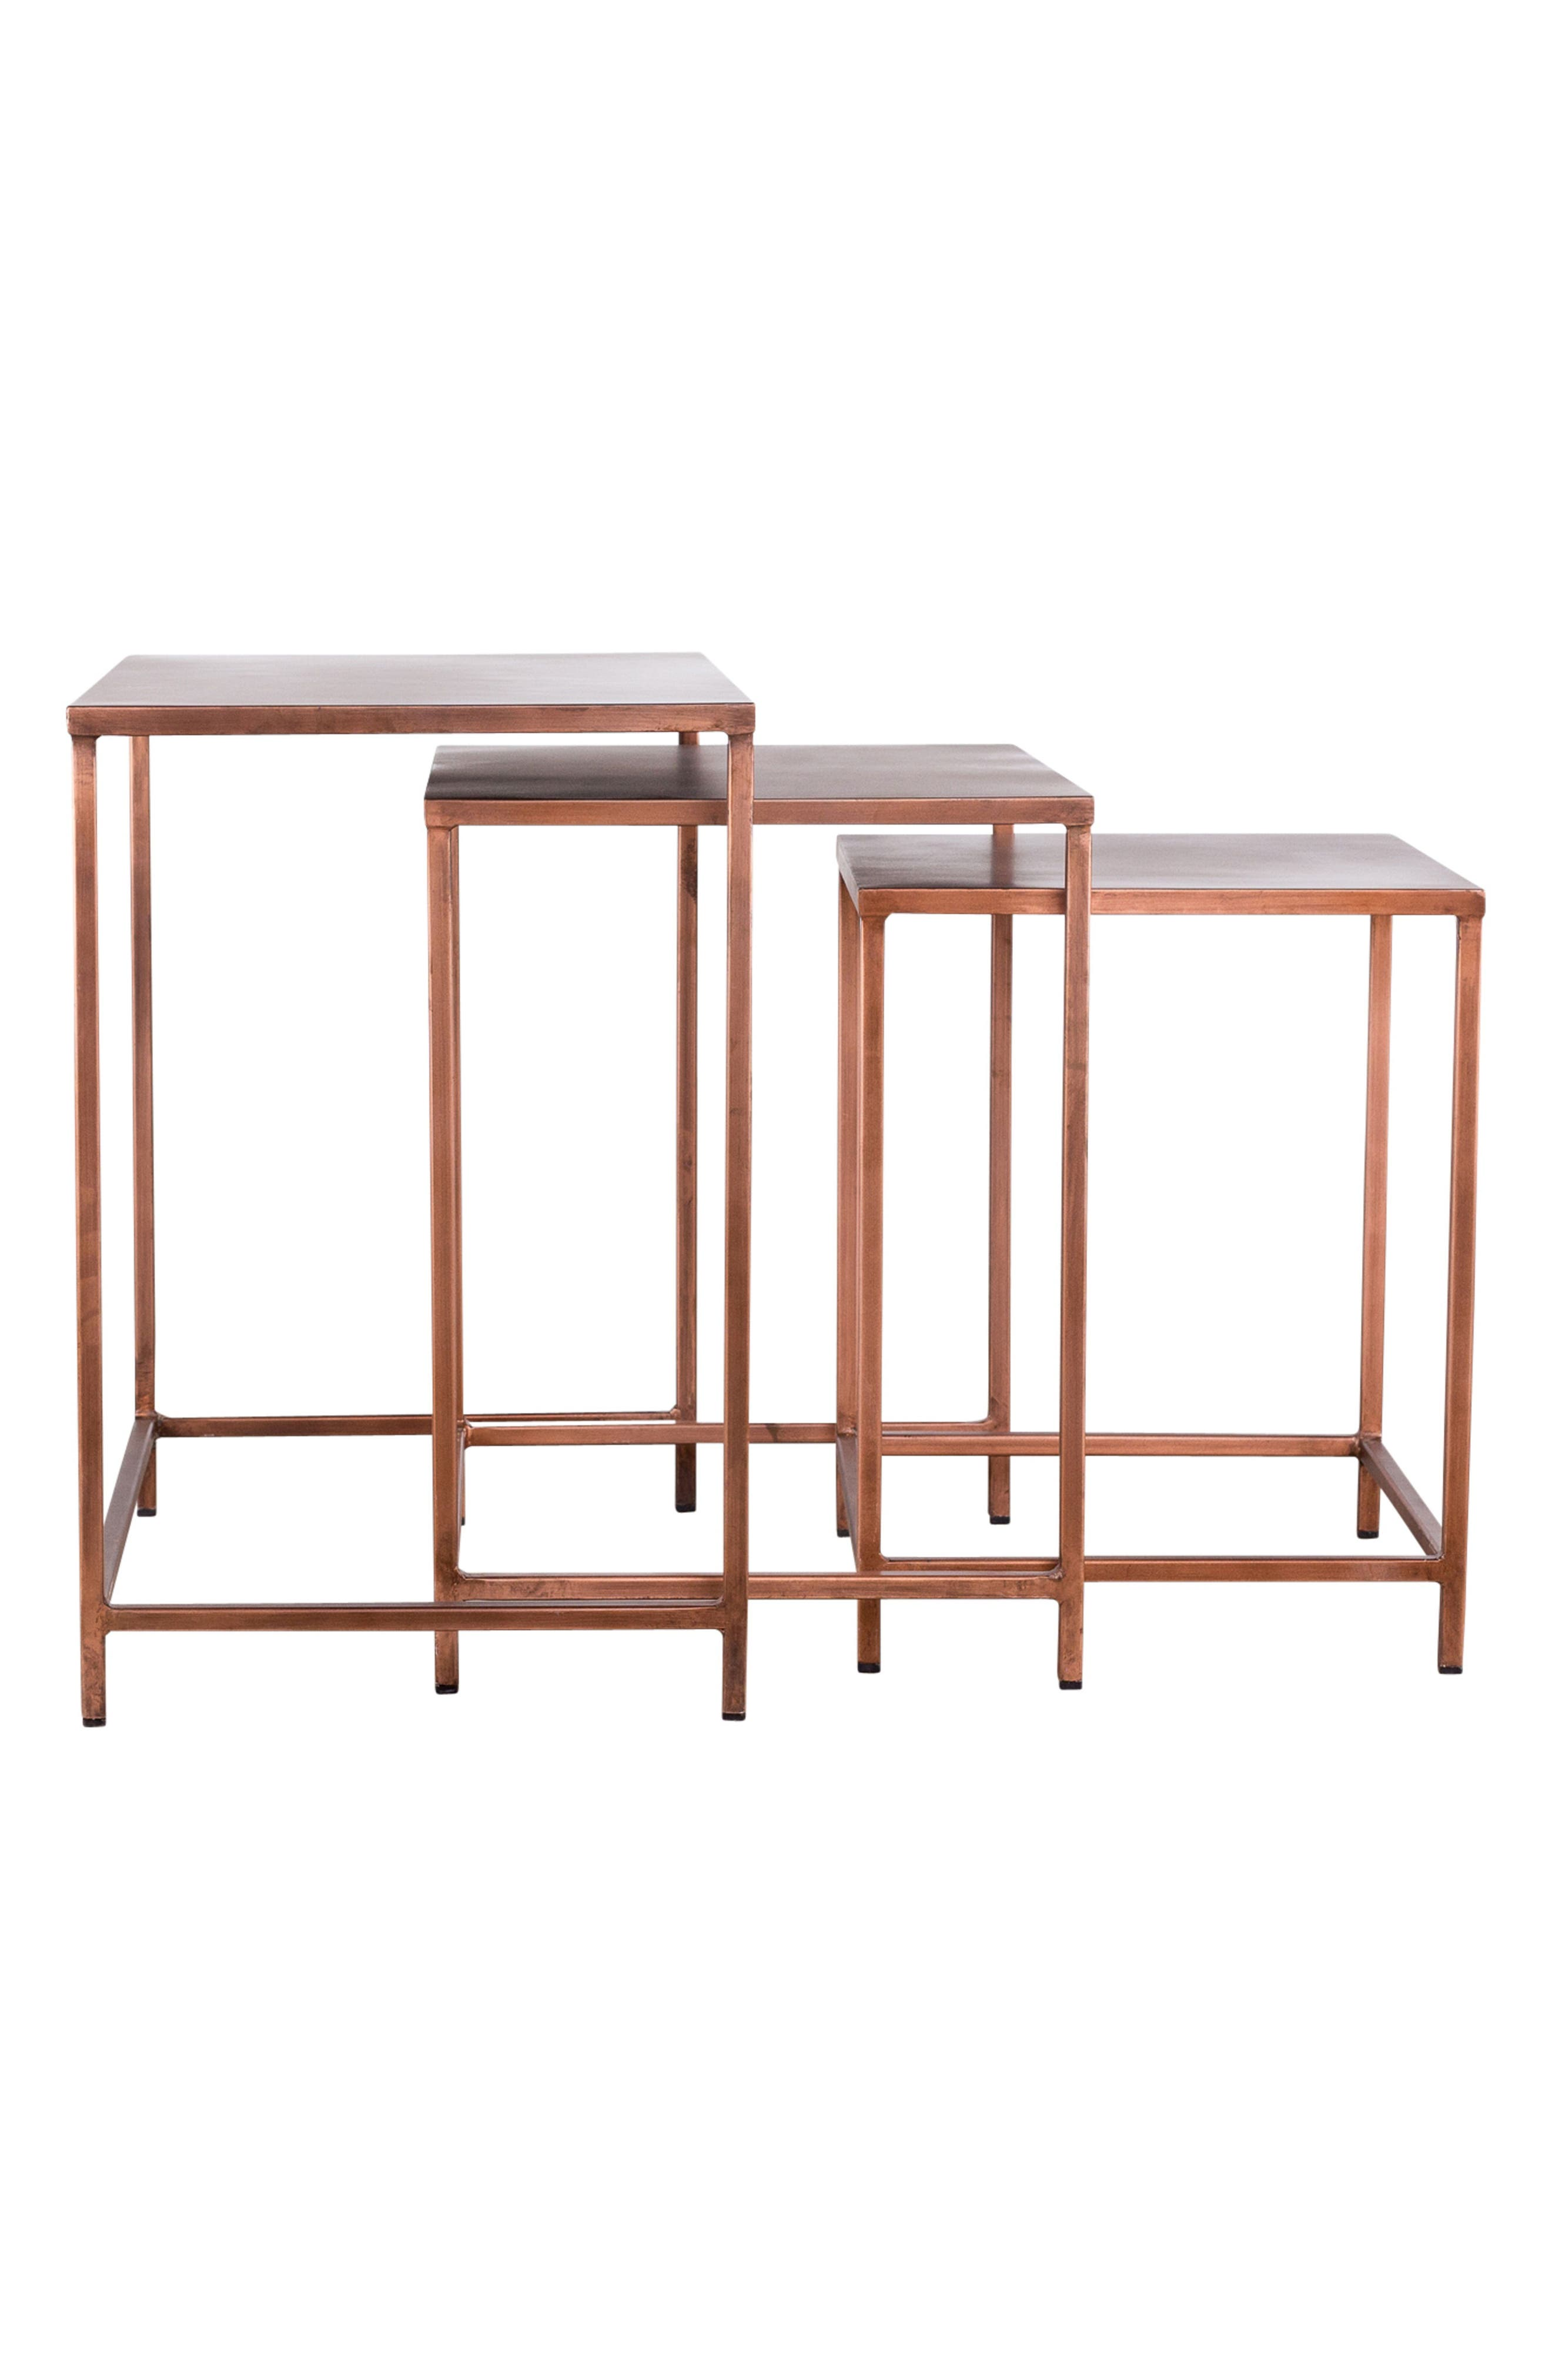 Pollock Set of 3 Nesting Tables,                             Alternate thumbnail 3, color,                             220